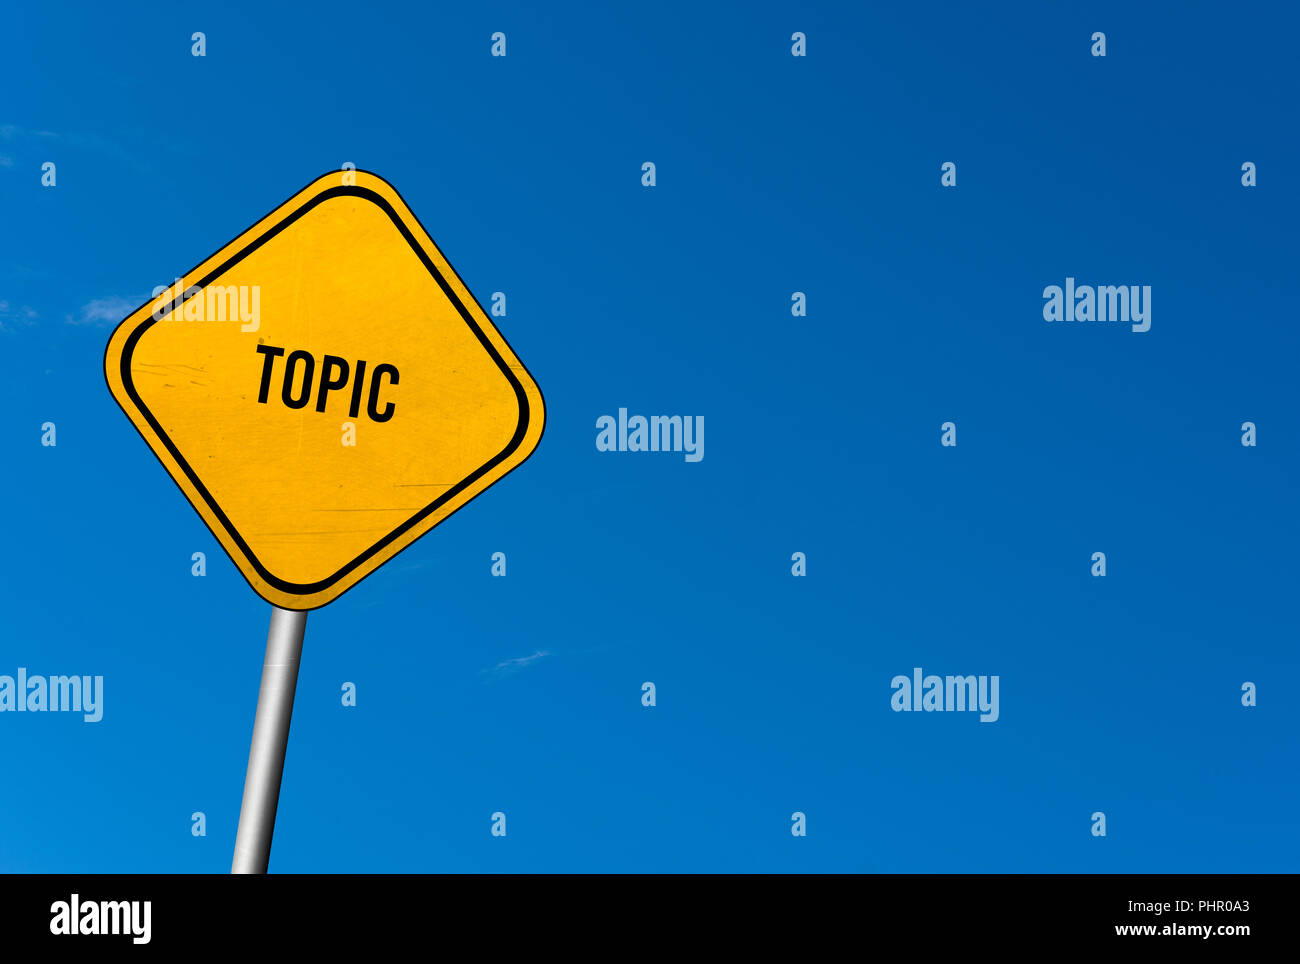 topic - yellow sign with blue sky - Stock Image